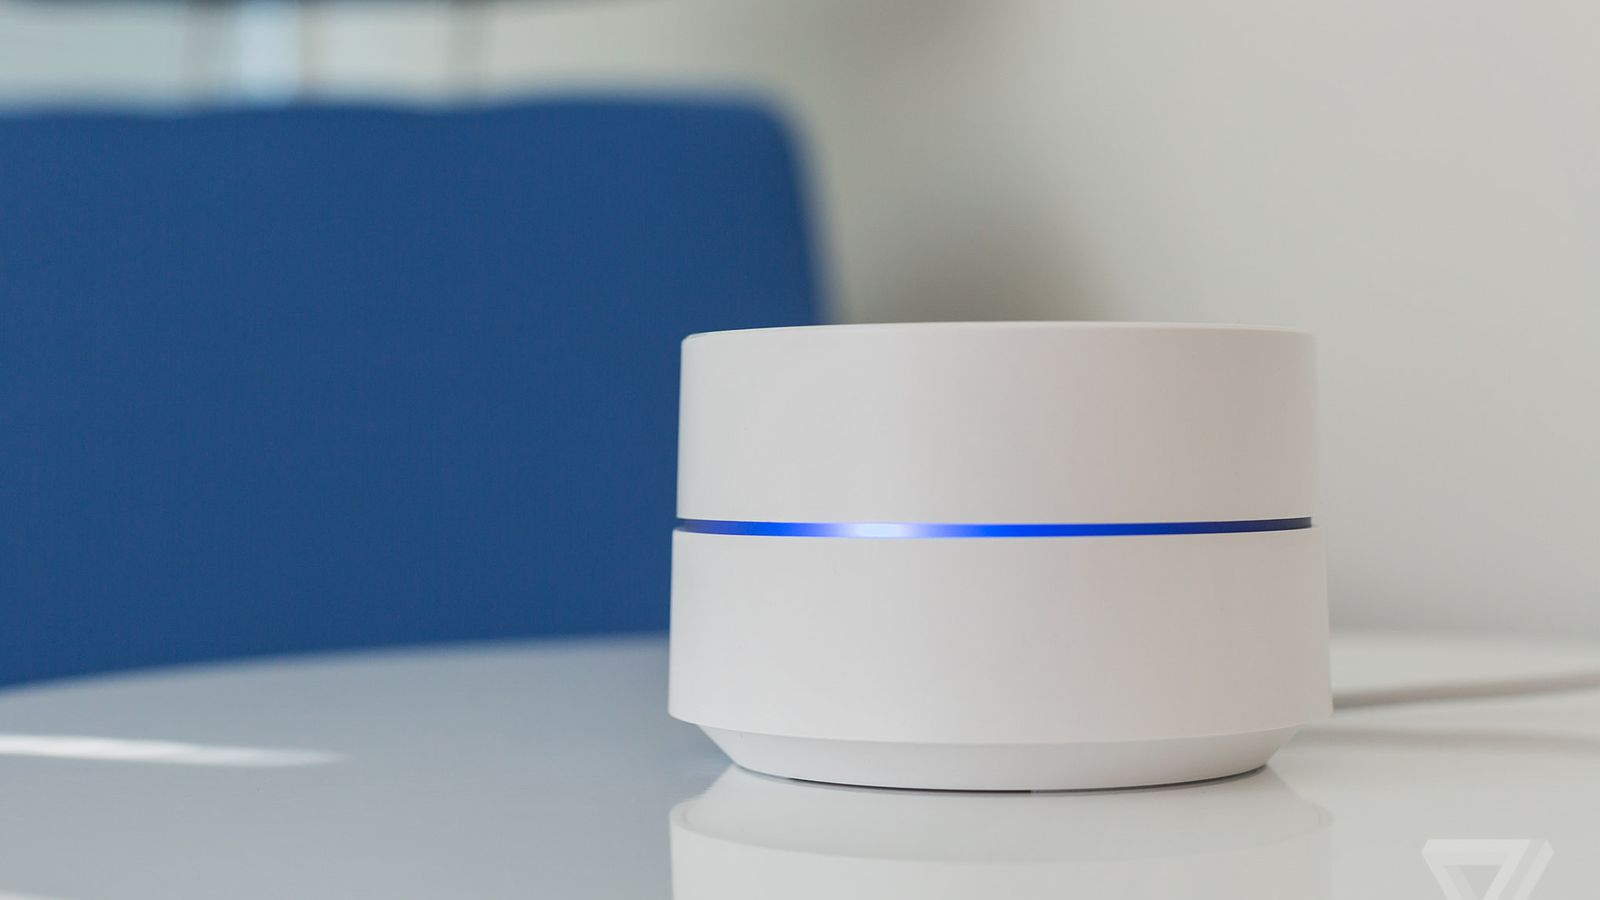 The Google Wifi routers are little white pucks you can scatter throughout your house - The Verge